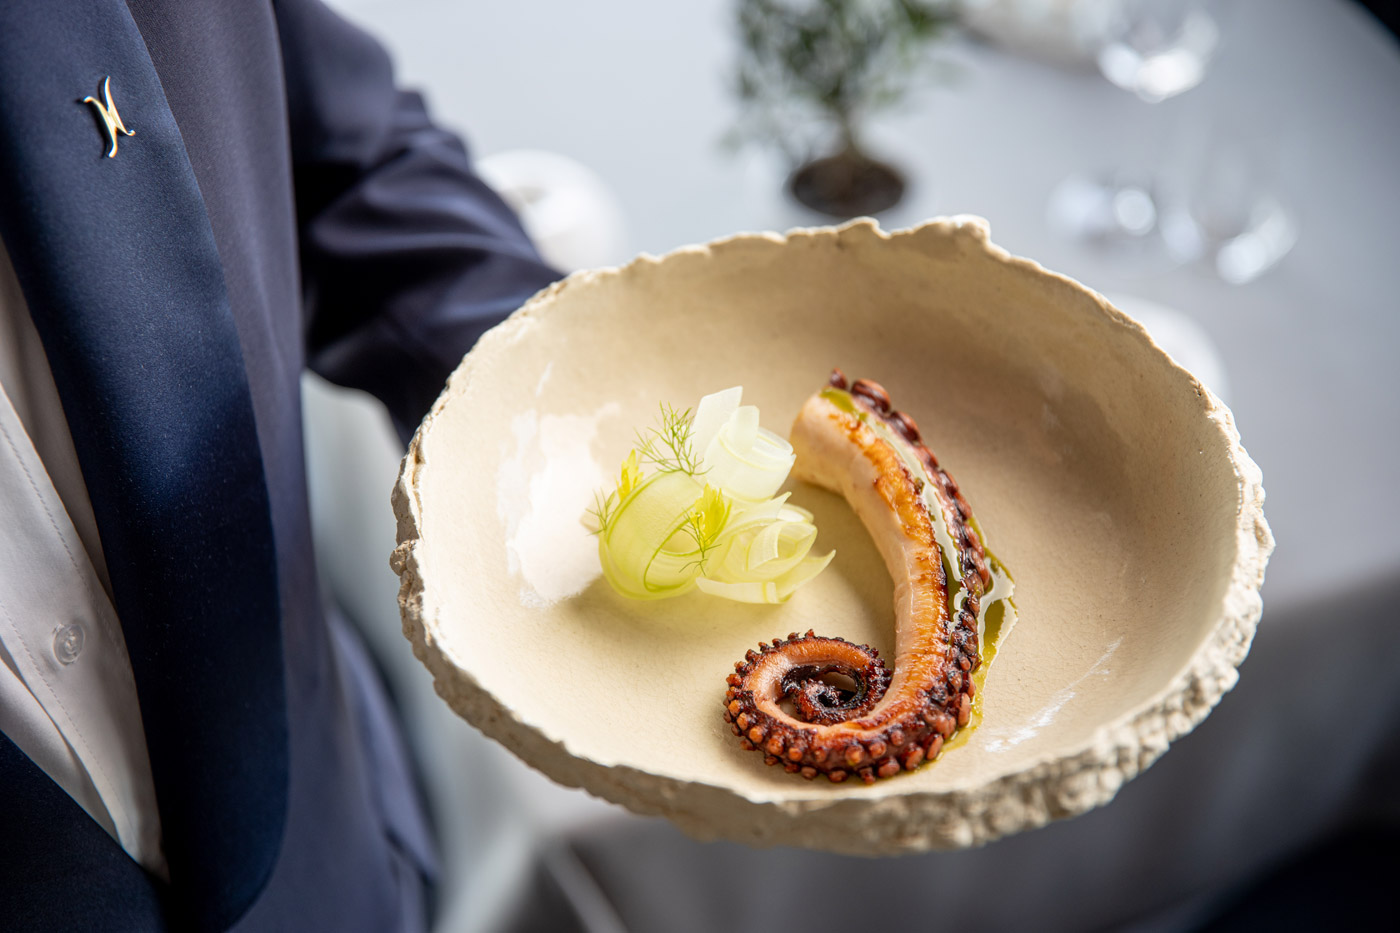 Octopus and celery, a tradition at Hotel Eden.